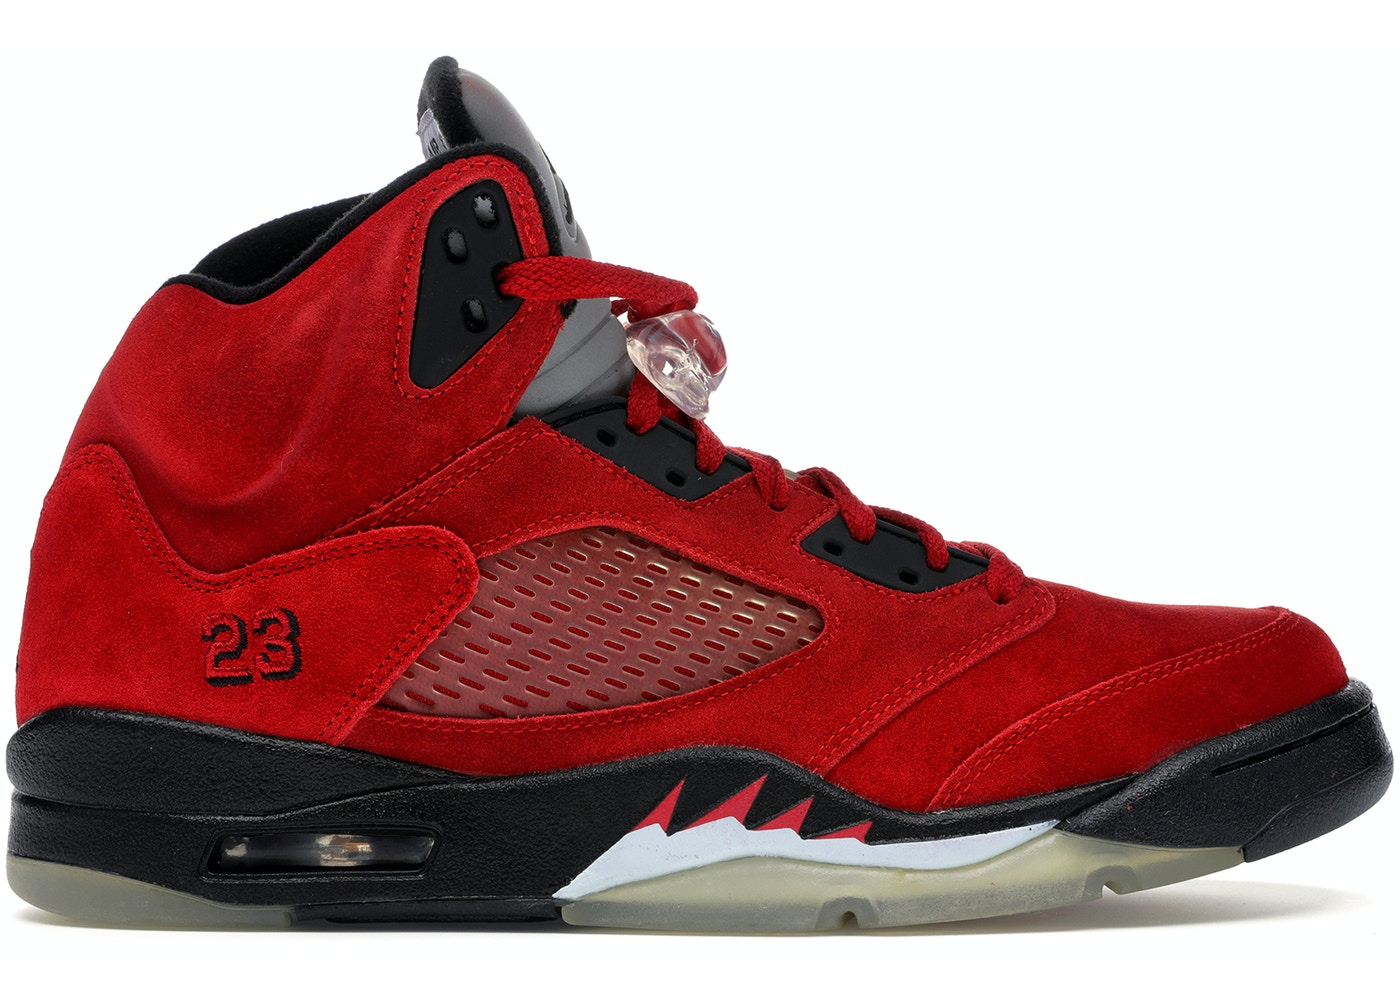 buy online 6187b 33f15 Jordan 5 Retro DMP Raging Bull Red Suede - 136027-601